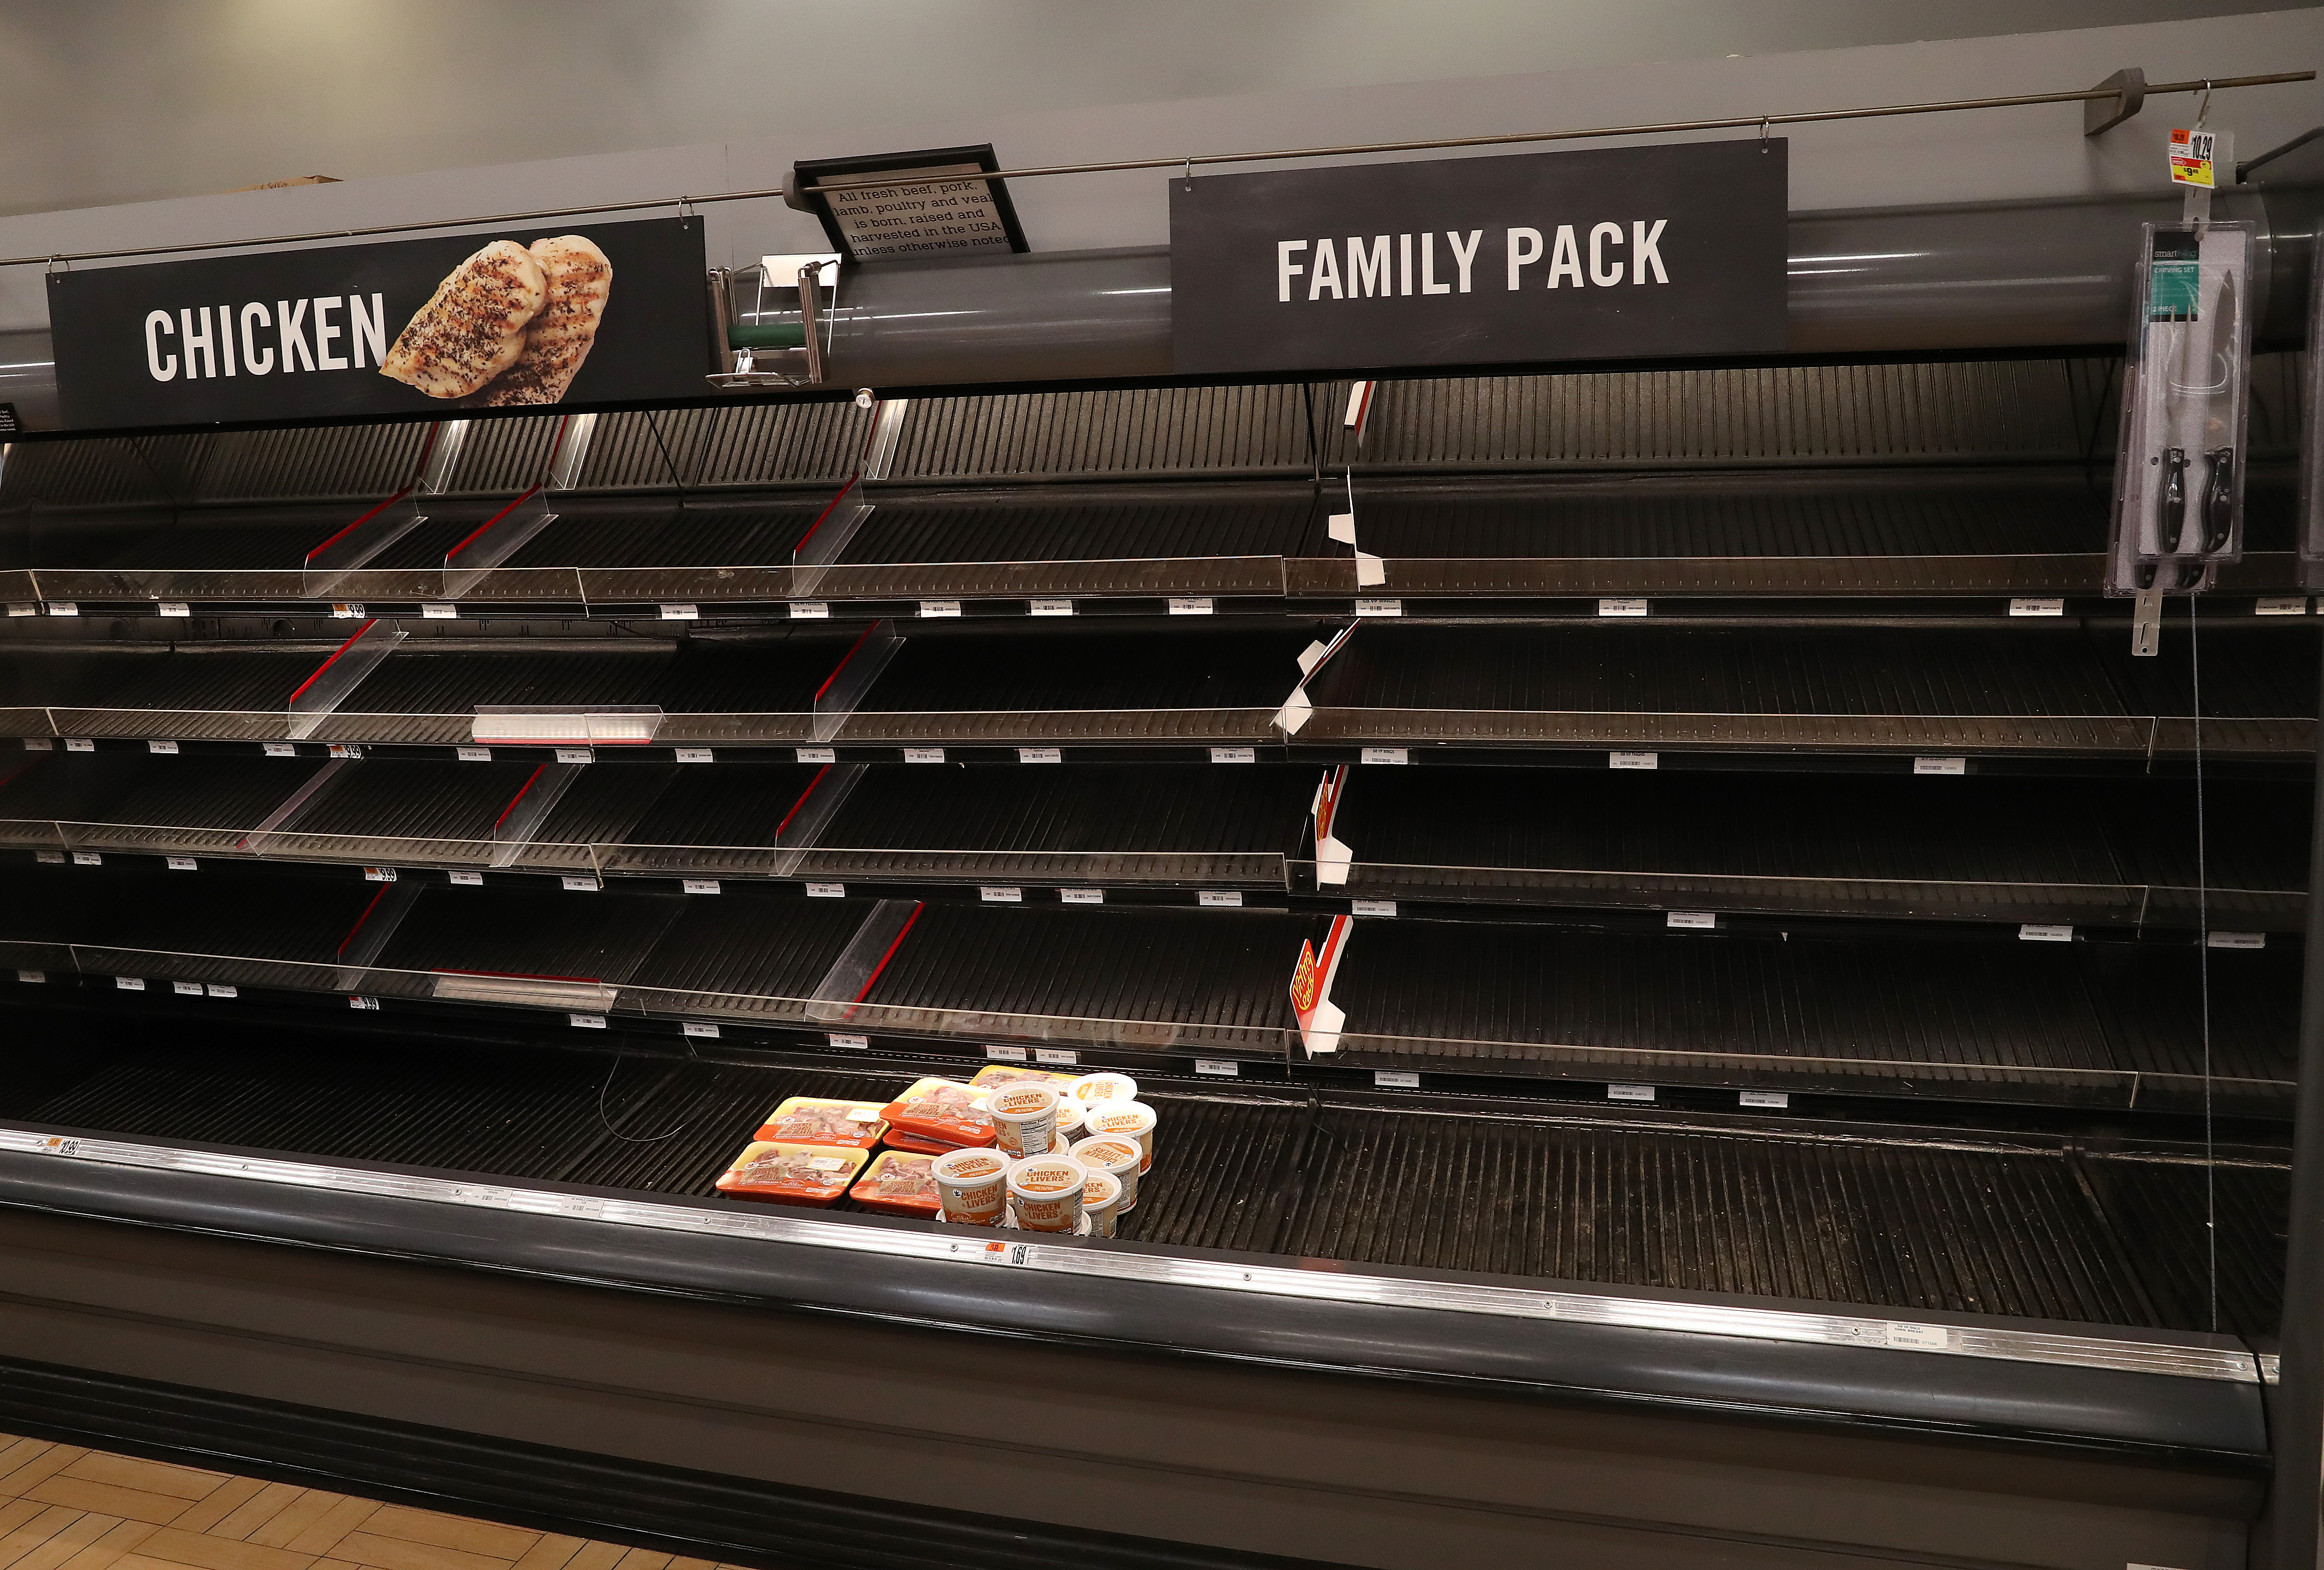 Shelves normally stocked with meat sit empty at a Giant grocery store in Dunkirk, Maryland, on March 13.